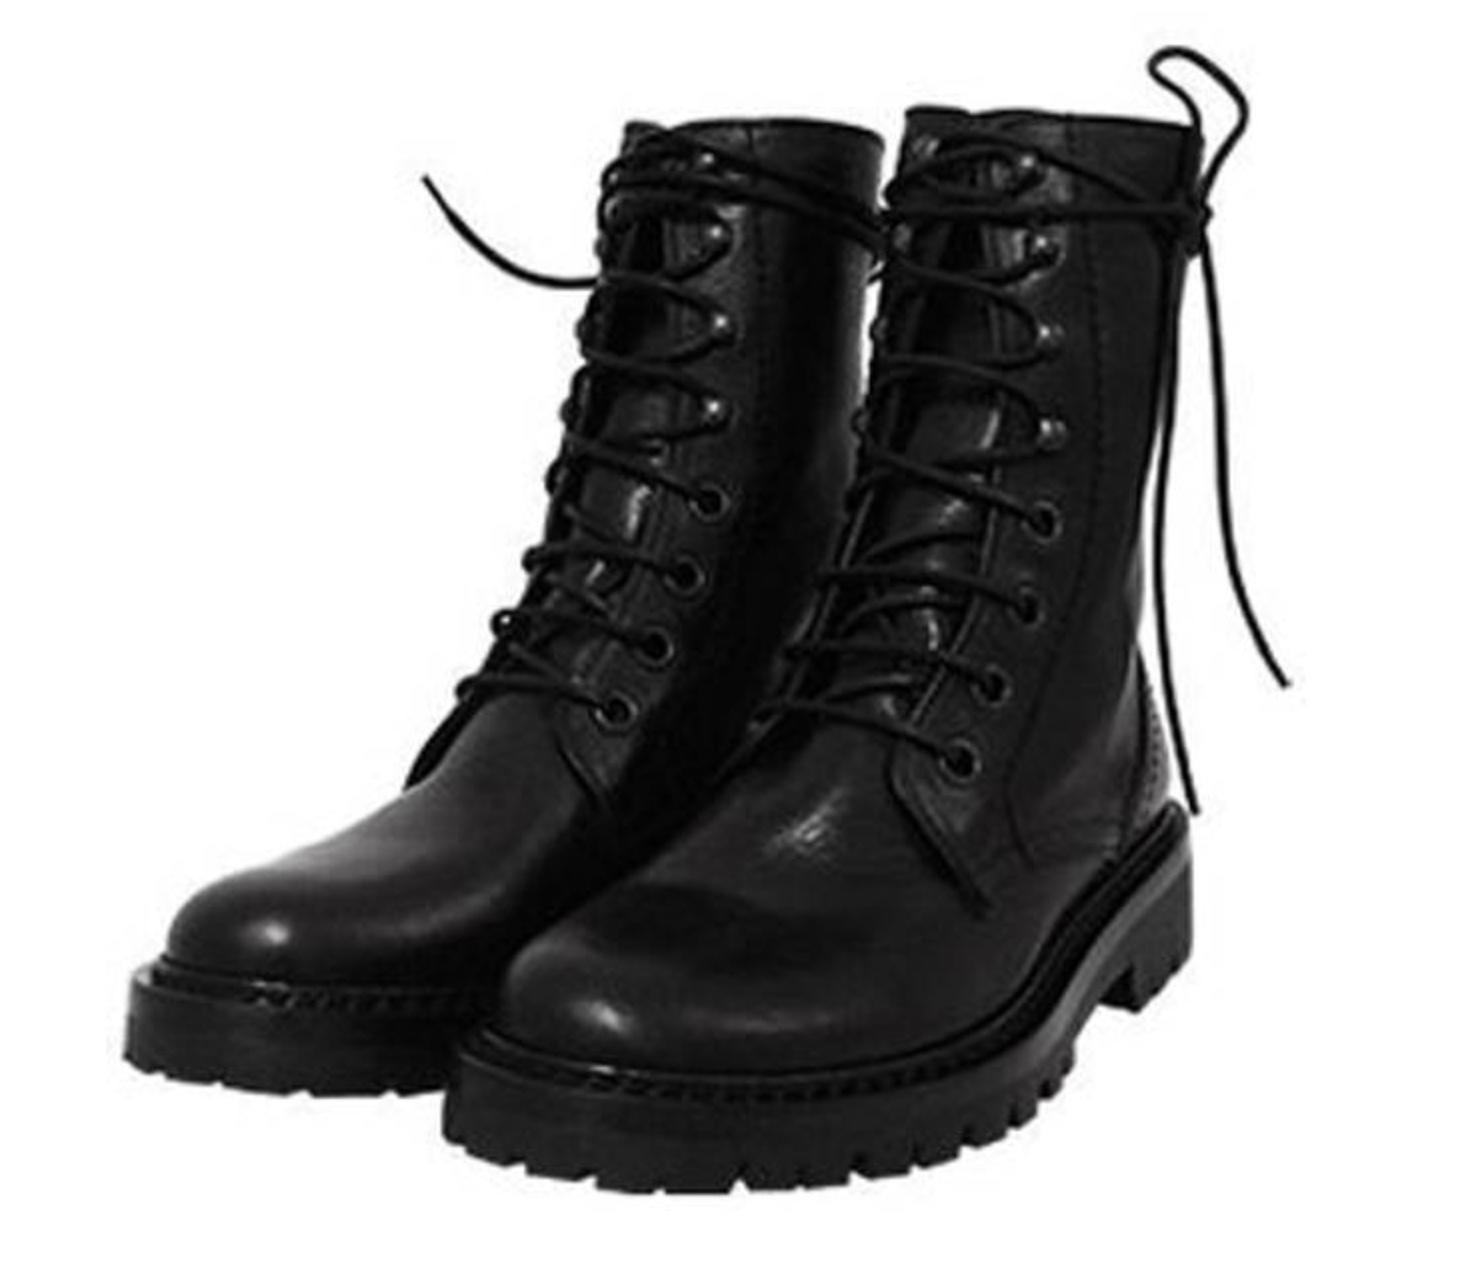 Ann Demeulemeester Round-Toe Combat Boots with paypal sale online outlet tumblr sale free shipping discount pre order wCzkoZ2KFg